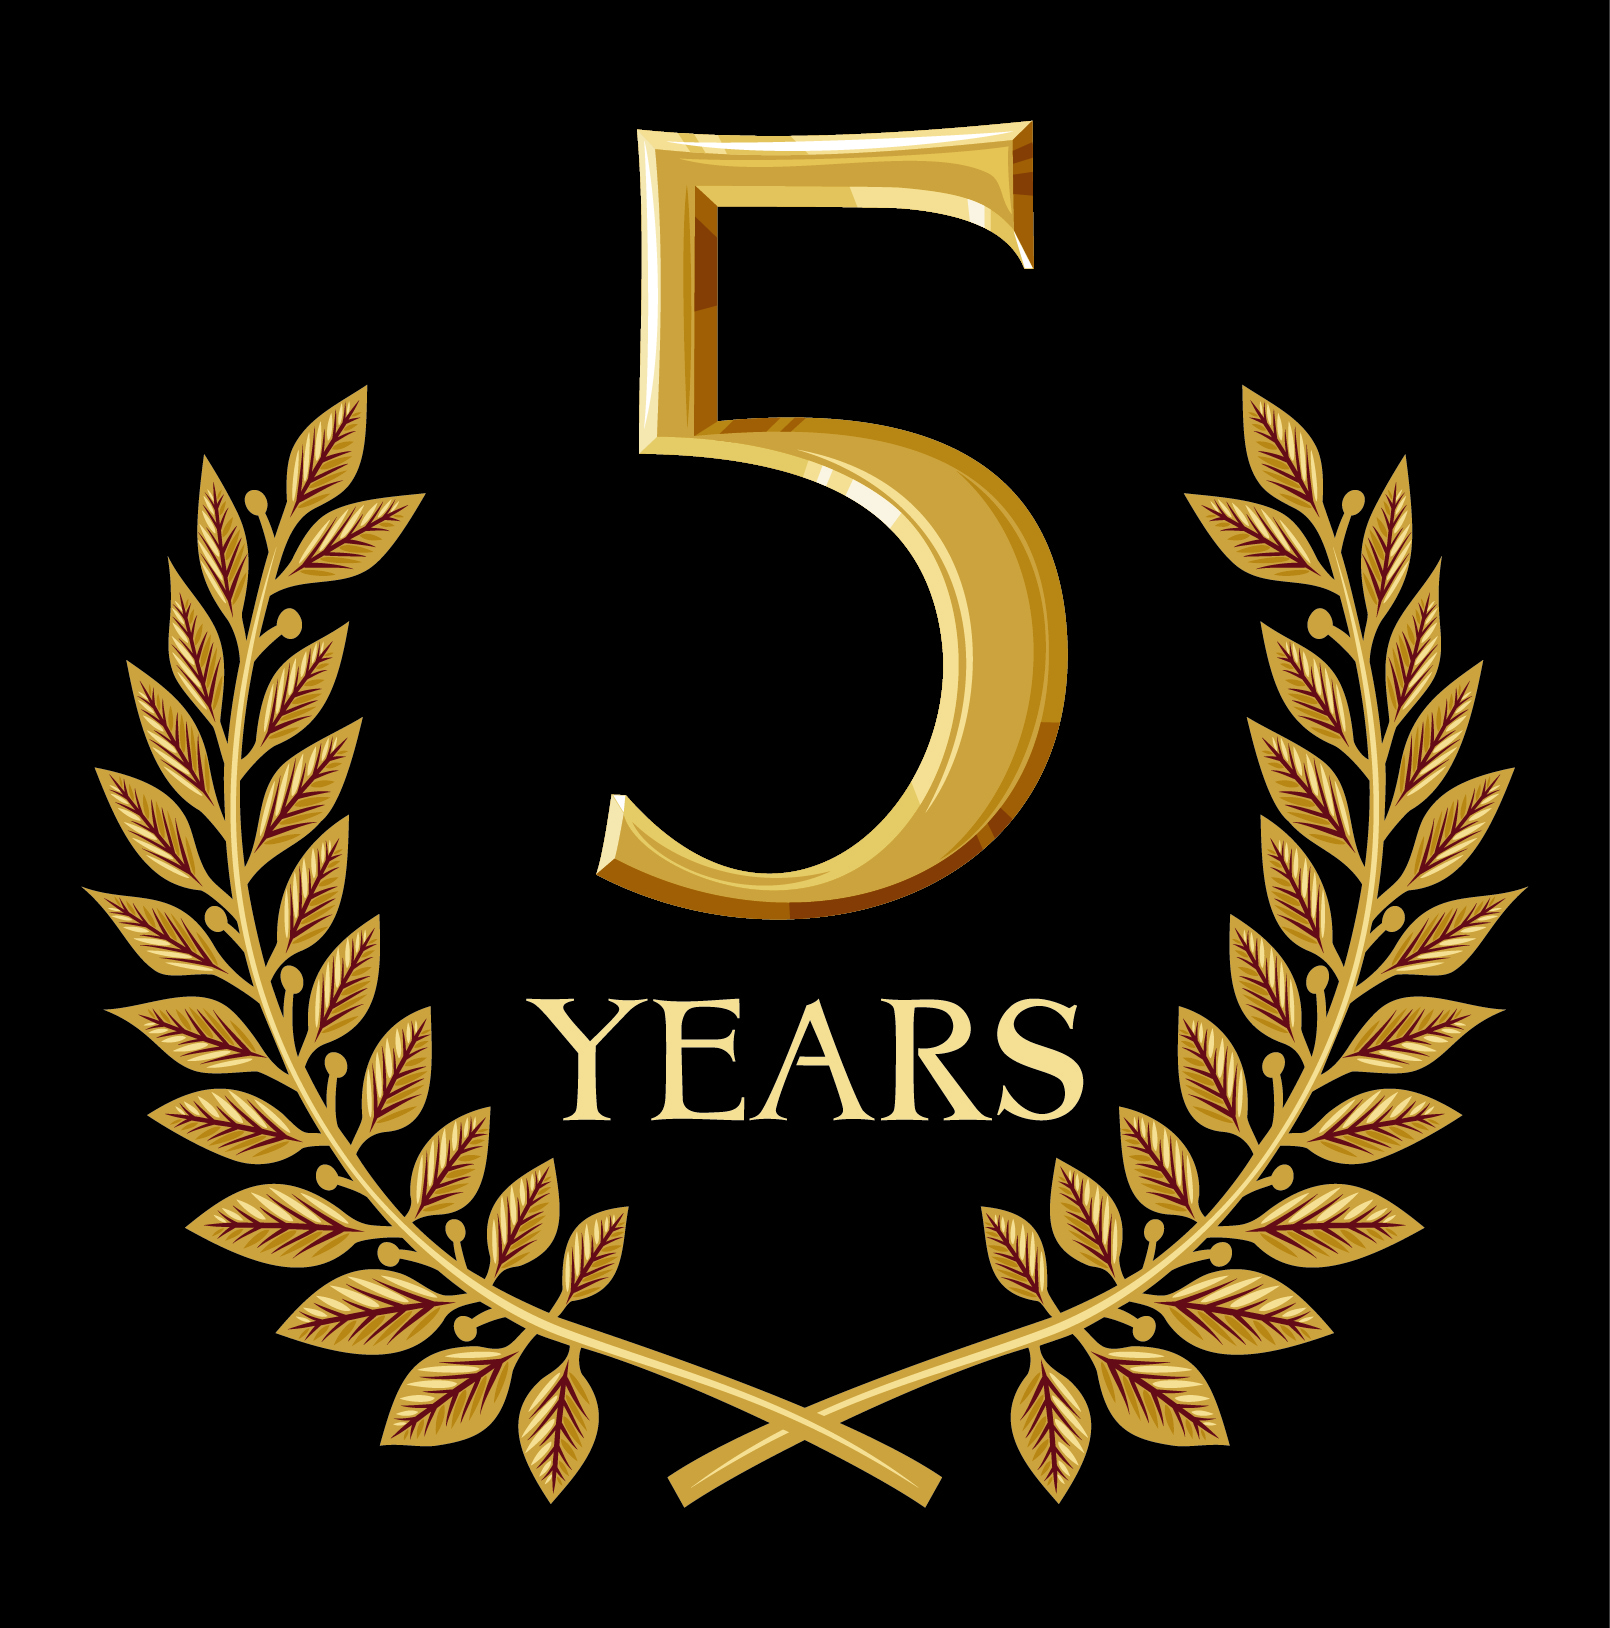 5 years sucess clipart jpg black and white stock Free 5th Cliparts, Download Free Clip Art, Free Clip Art on Clipart ... jpg black and white stock